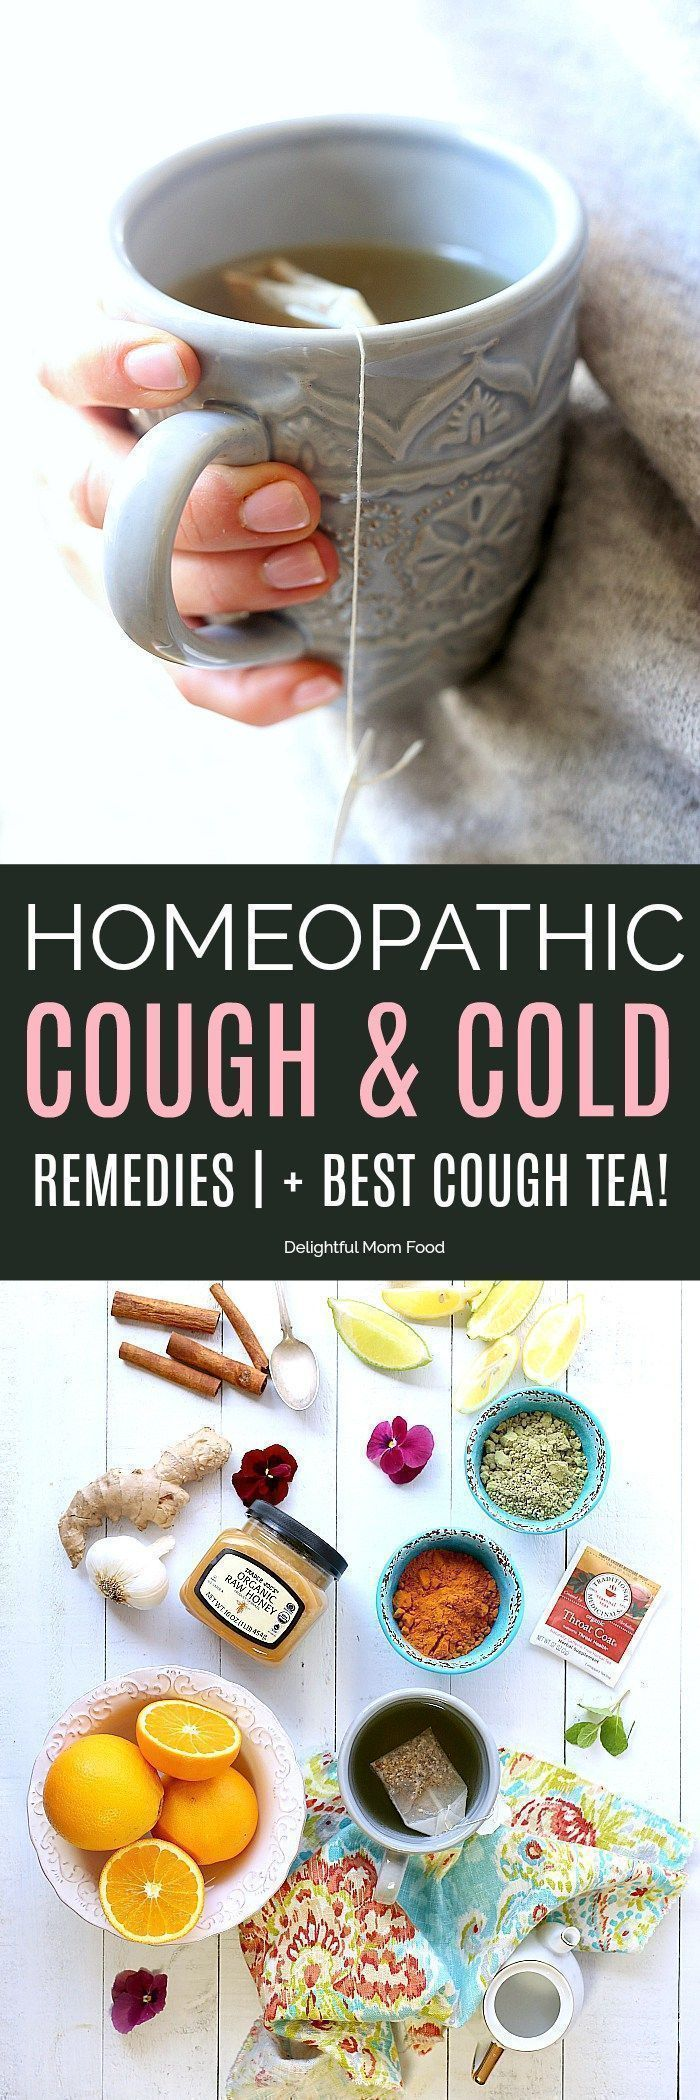 Natural remedies for cough, cold and flu symptoms to help heal your body quickly, boost immunity plus grandma's best tea recipe to fight a naughty cough that doesn't seem to go away!#homeopathic #remedies #healing #cough #cold #flu #home #natural #tea | Delightfulmomfood.com #remediesforcoldandflu #flusymptoms #coldandflu